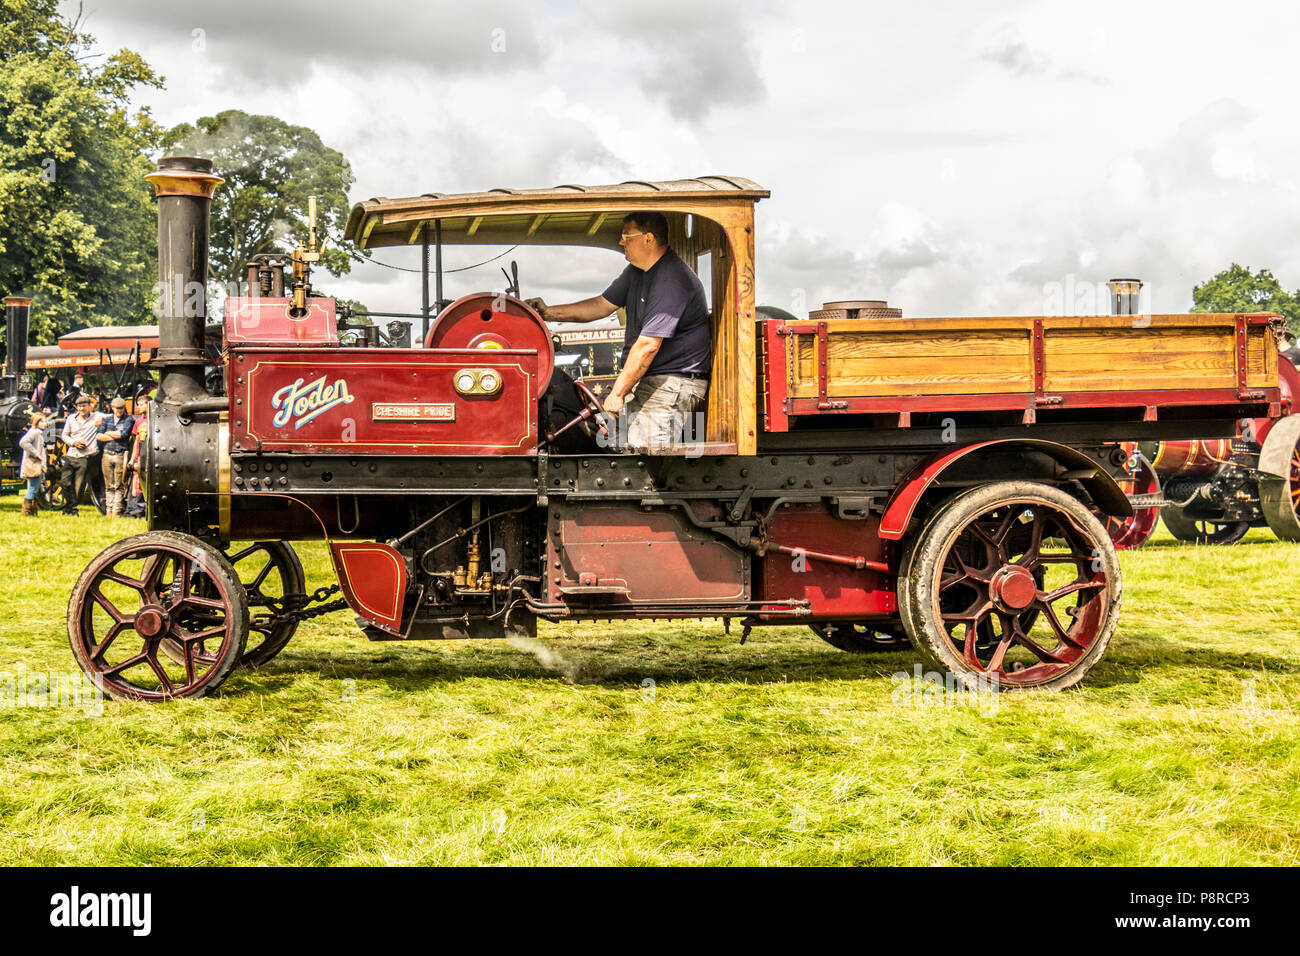 Steam vehicles including bus's and lorries, at Astle Park steam festival Chelford Cheshire United Kingdom - Stock Image